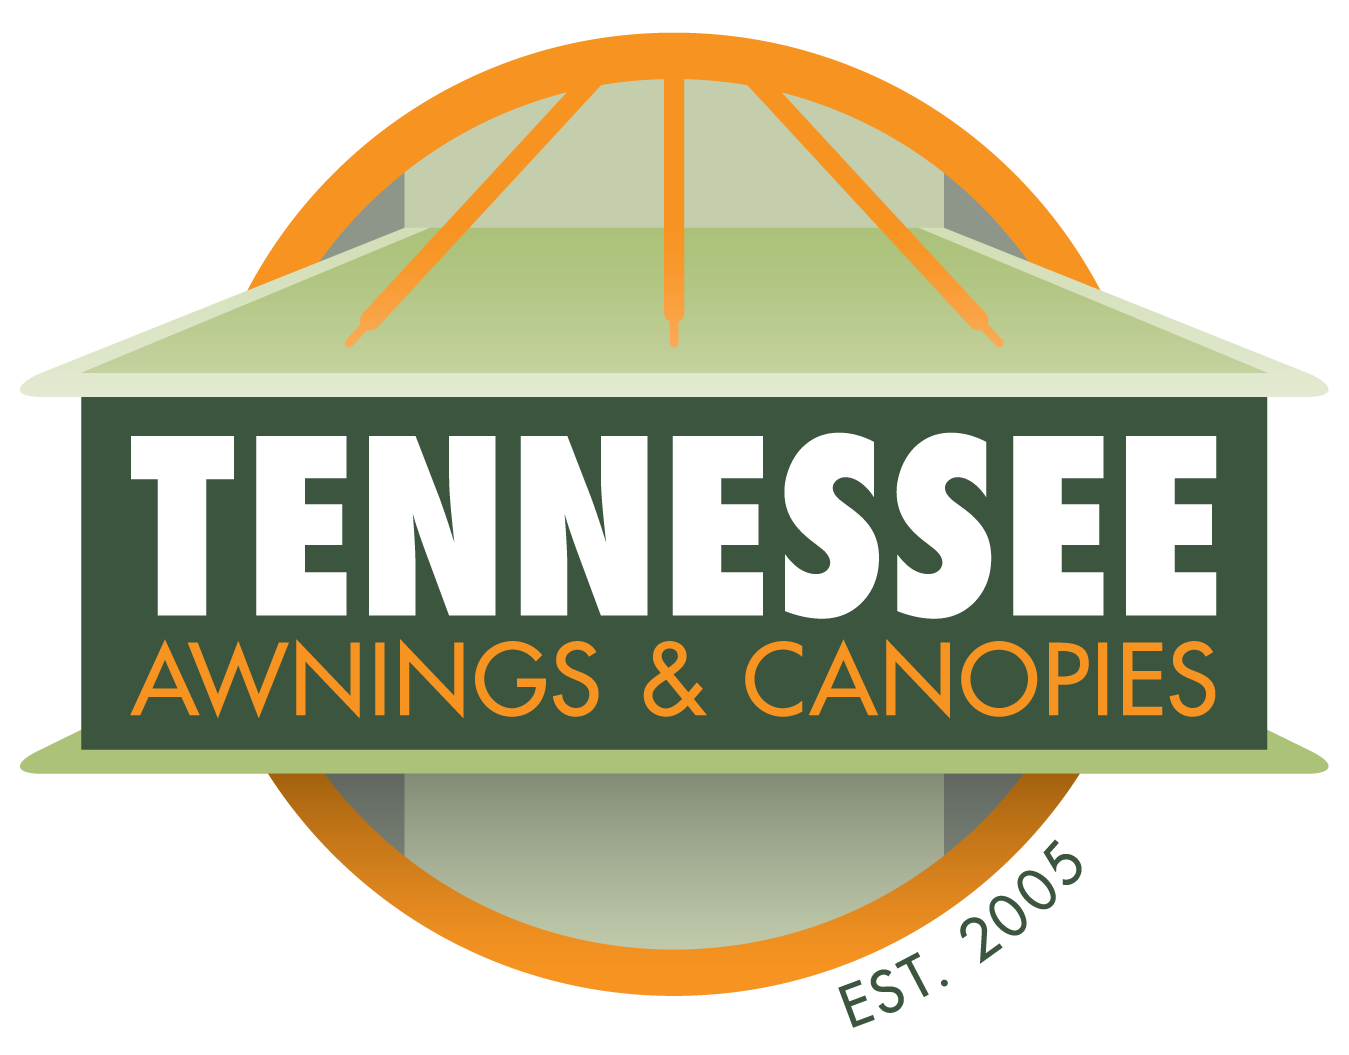 Tennessee Awnings